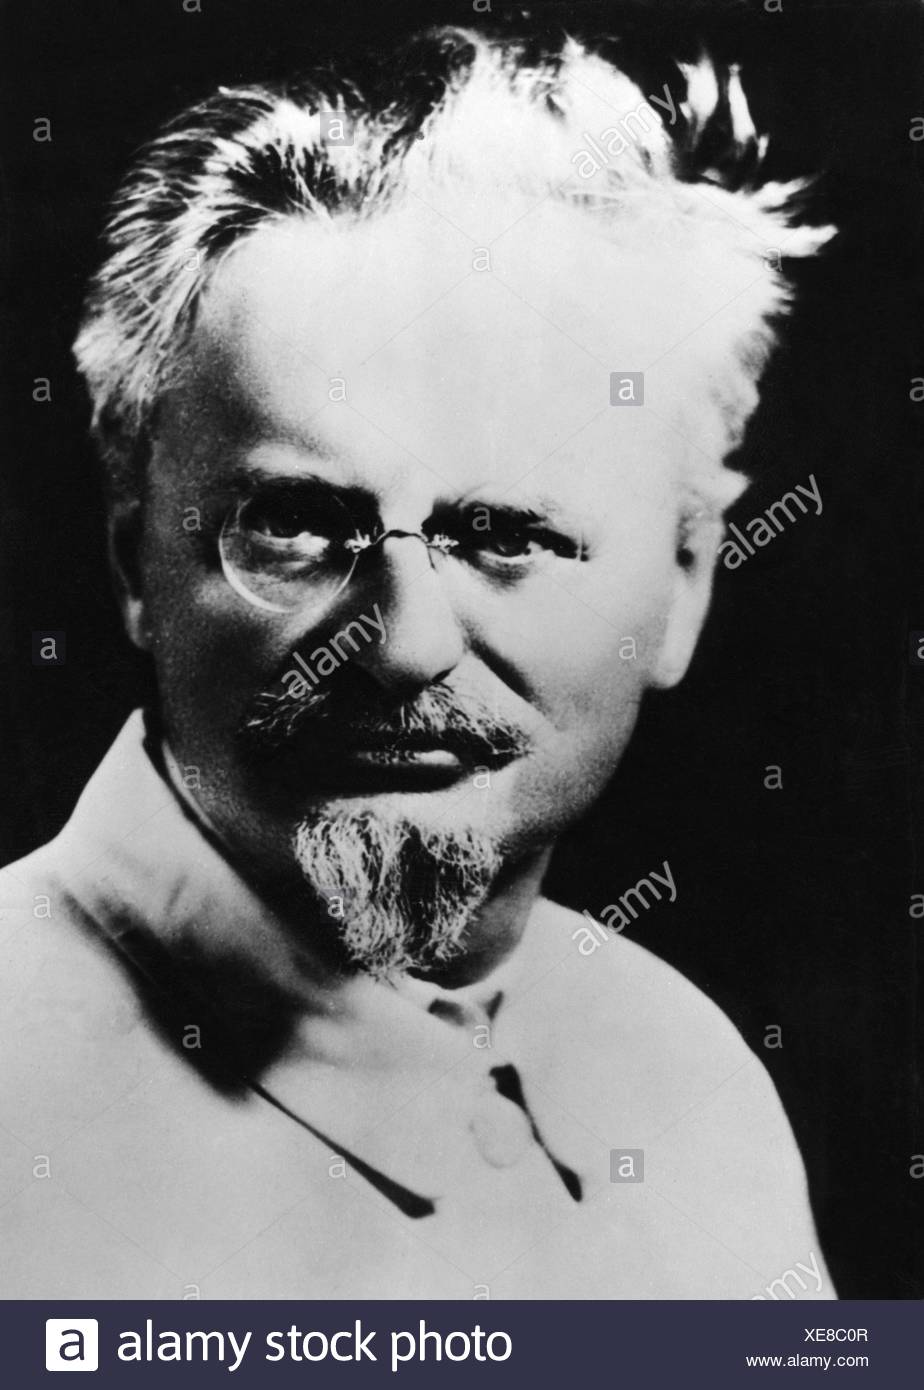 Trotsky, Leon, 7.11.1879 - 28.8.1940, Soviet politician, portrait, 1930s, Additional-Rights-Clearances-NA Stock Photo